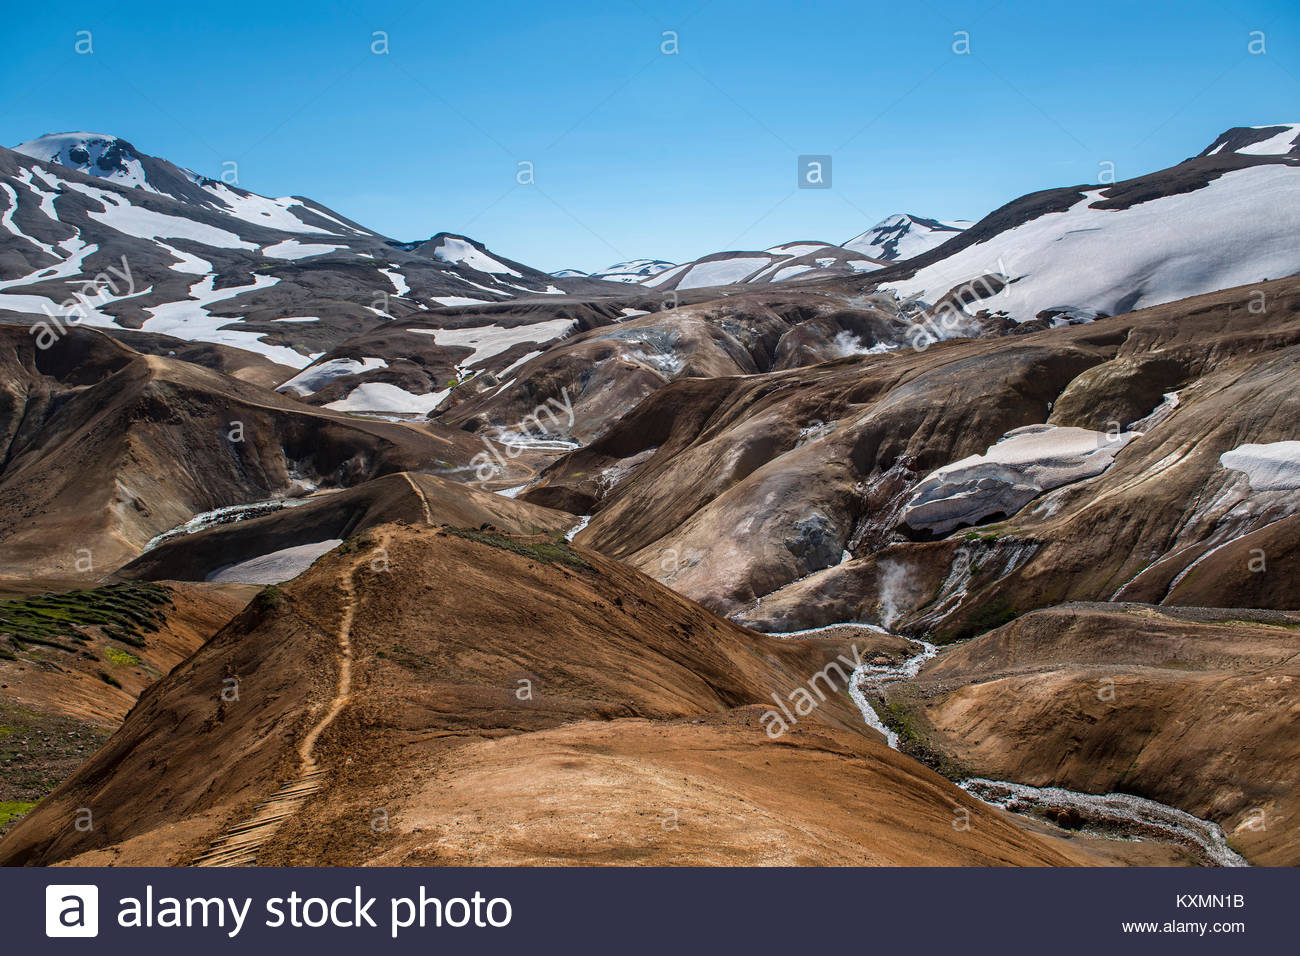 Landscape at the geothermal active valley,Kerlingafjoll,Iceland - Stock Image